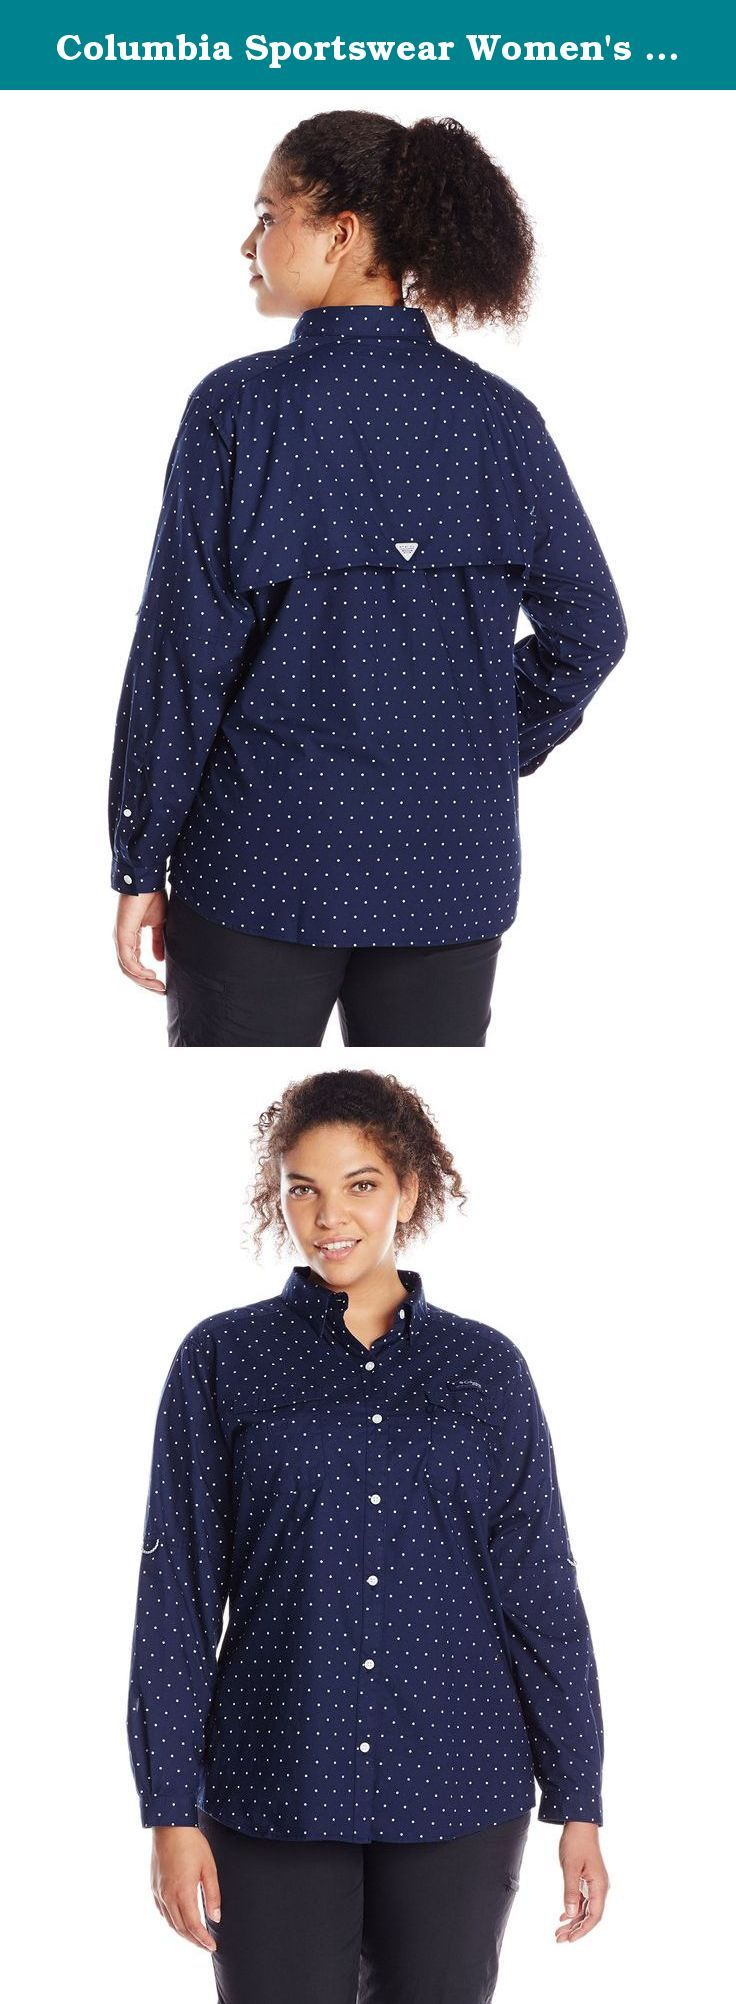 Columbia Sportswear Women's Plus Super Bonehead II W Long Sleeve Shirt, Collegiate Navy Polka Dot, 2X. The print plaid version of our cool, protective Bonehead, constructed of soft cotton that's garment washed for lived-in comfort, with fly box pockets and a rod holder loop at the left chest to meet the needs of lady anglers.